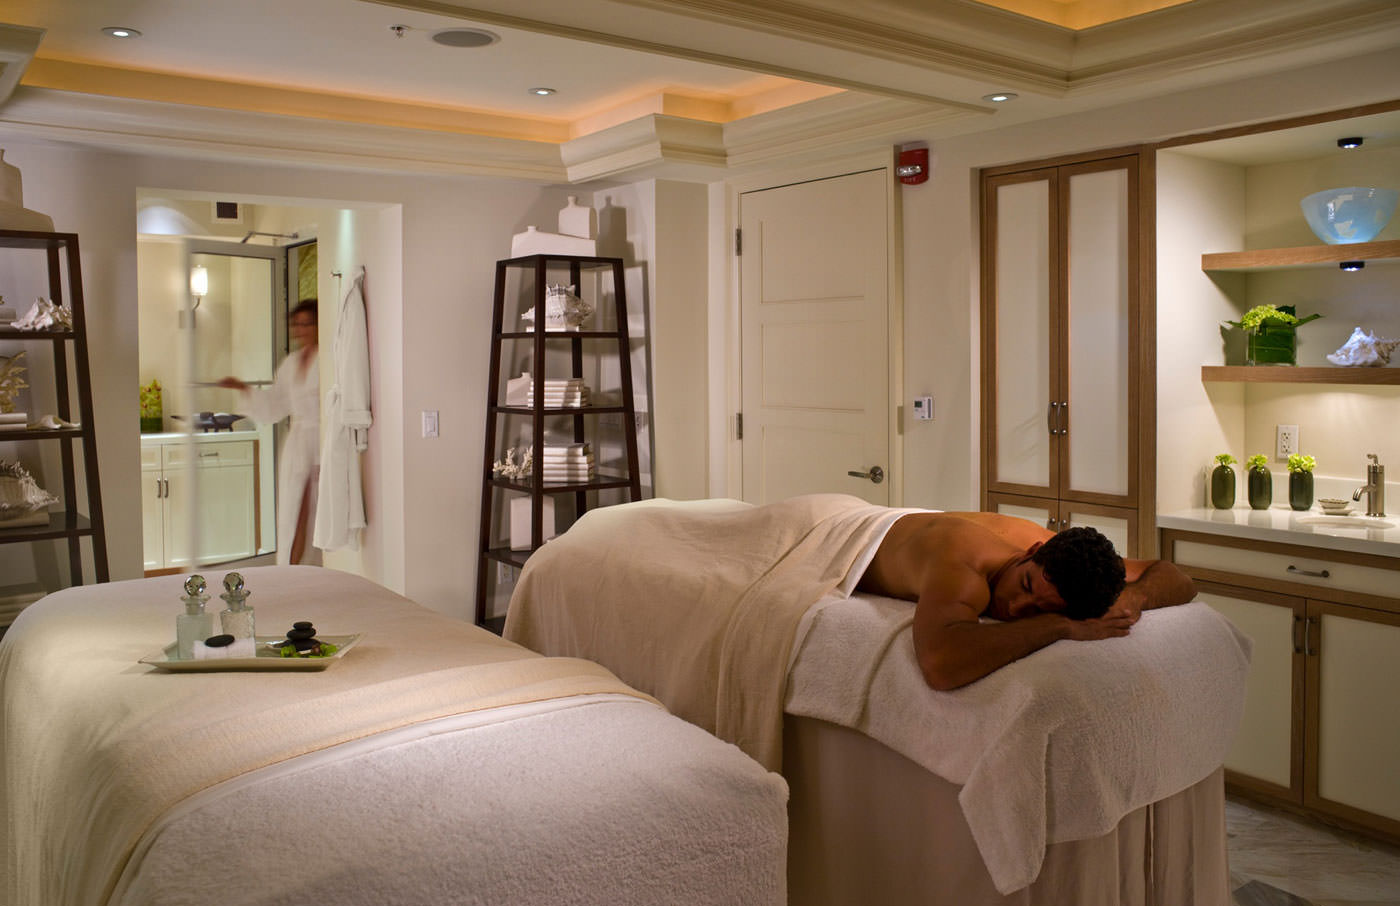 FourSeasonsResortSpa_PalmBeach - palm beach